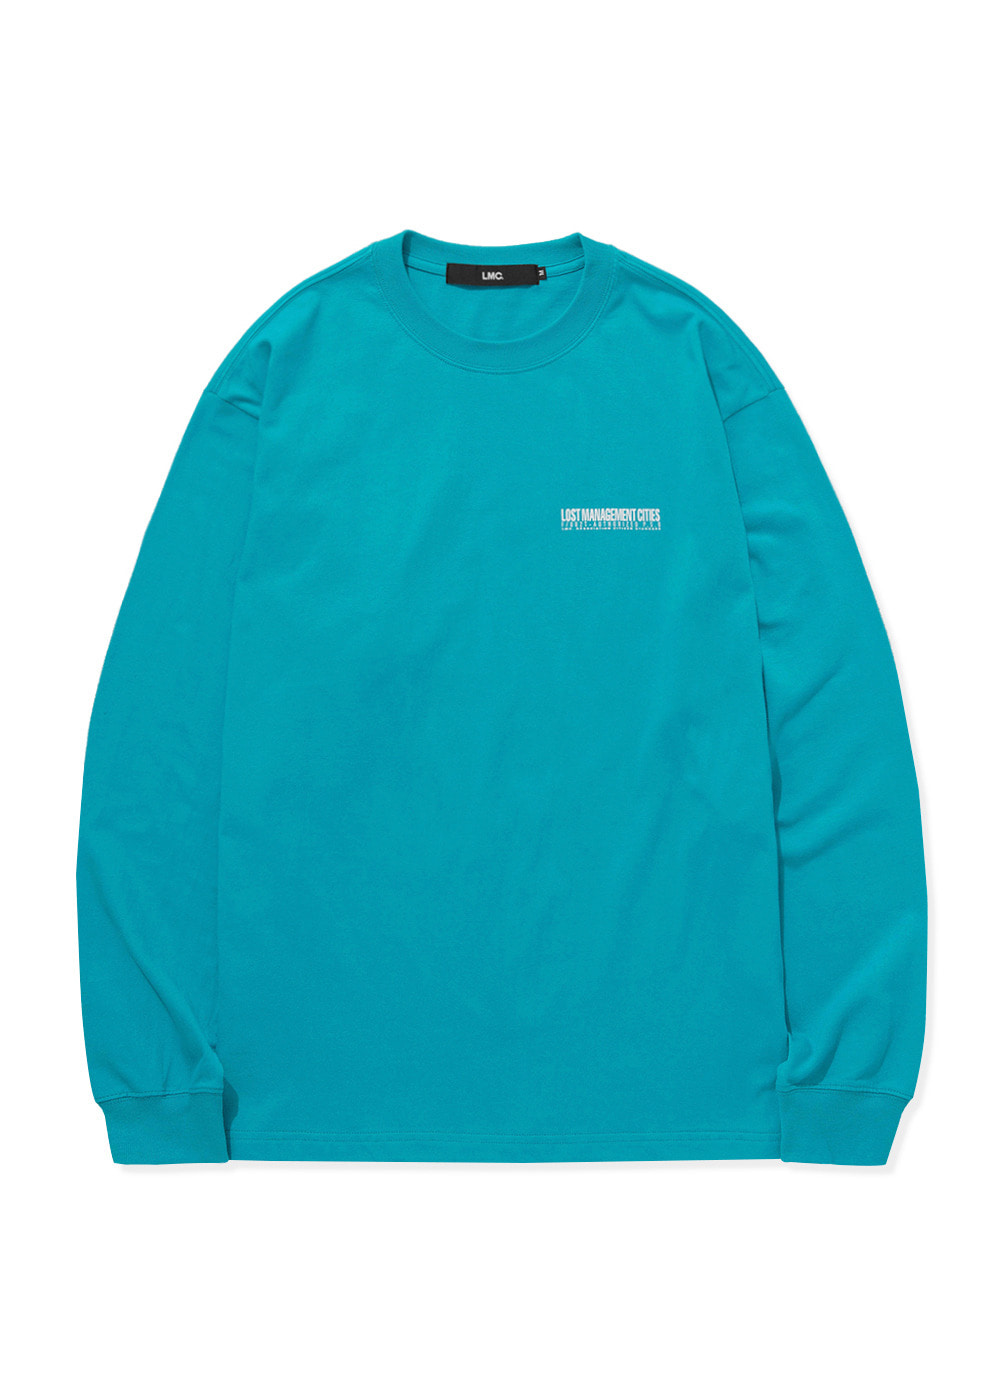 LMC AUTHORIZED LOGO LONG SLV TEE mint blue